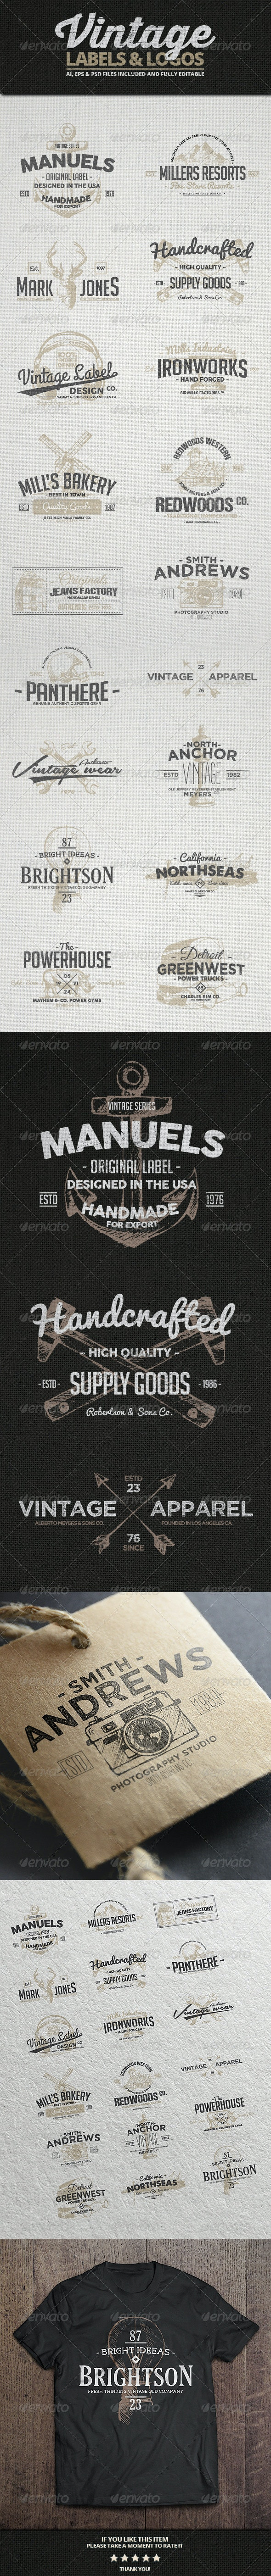 Vintage Labels & Logos Vol.3 - Badges & Stickers Web Elements